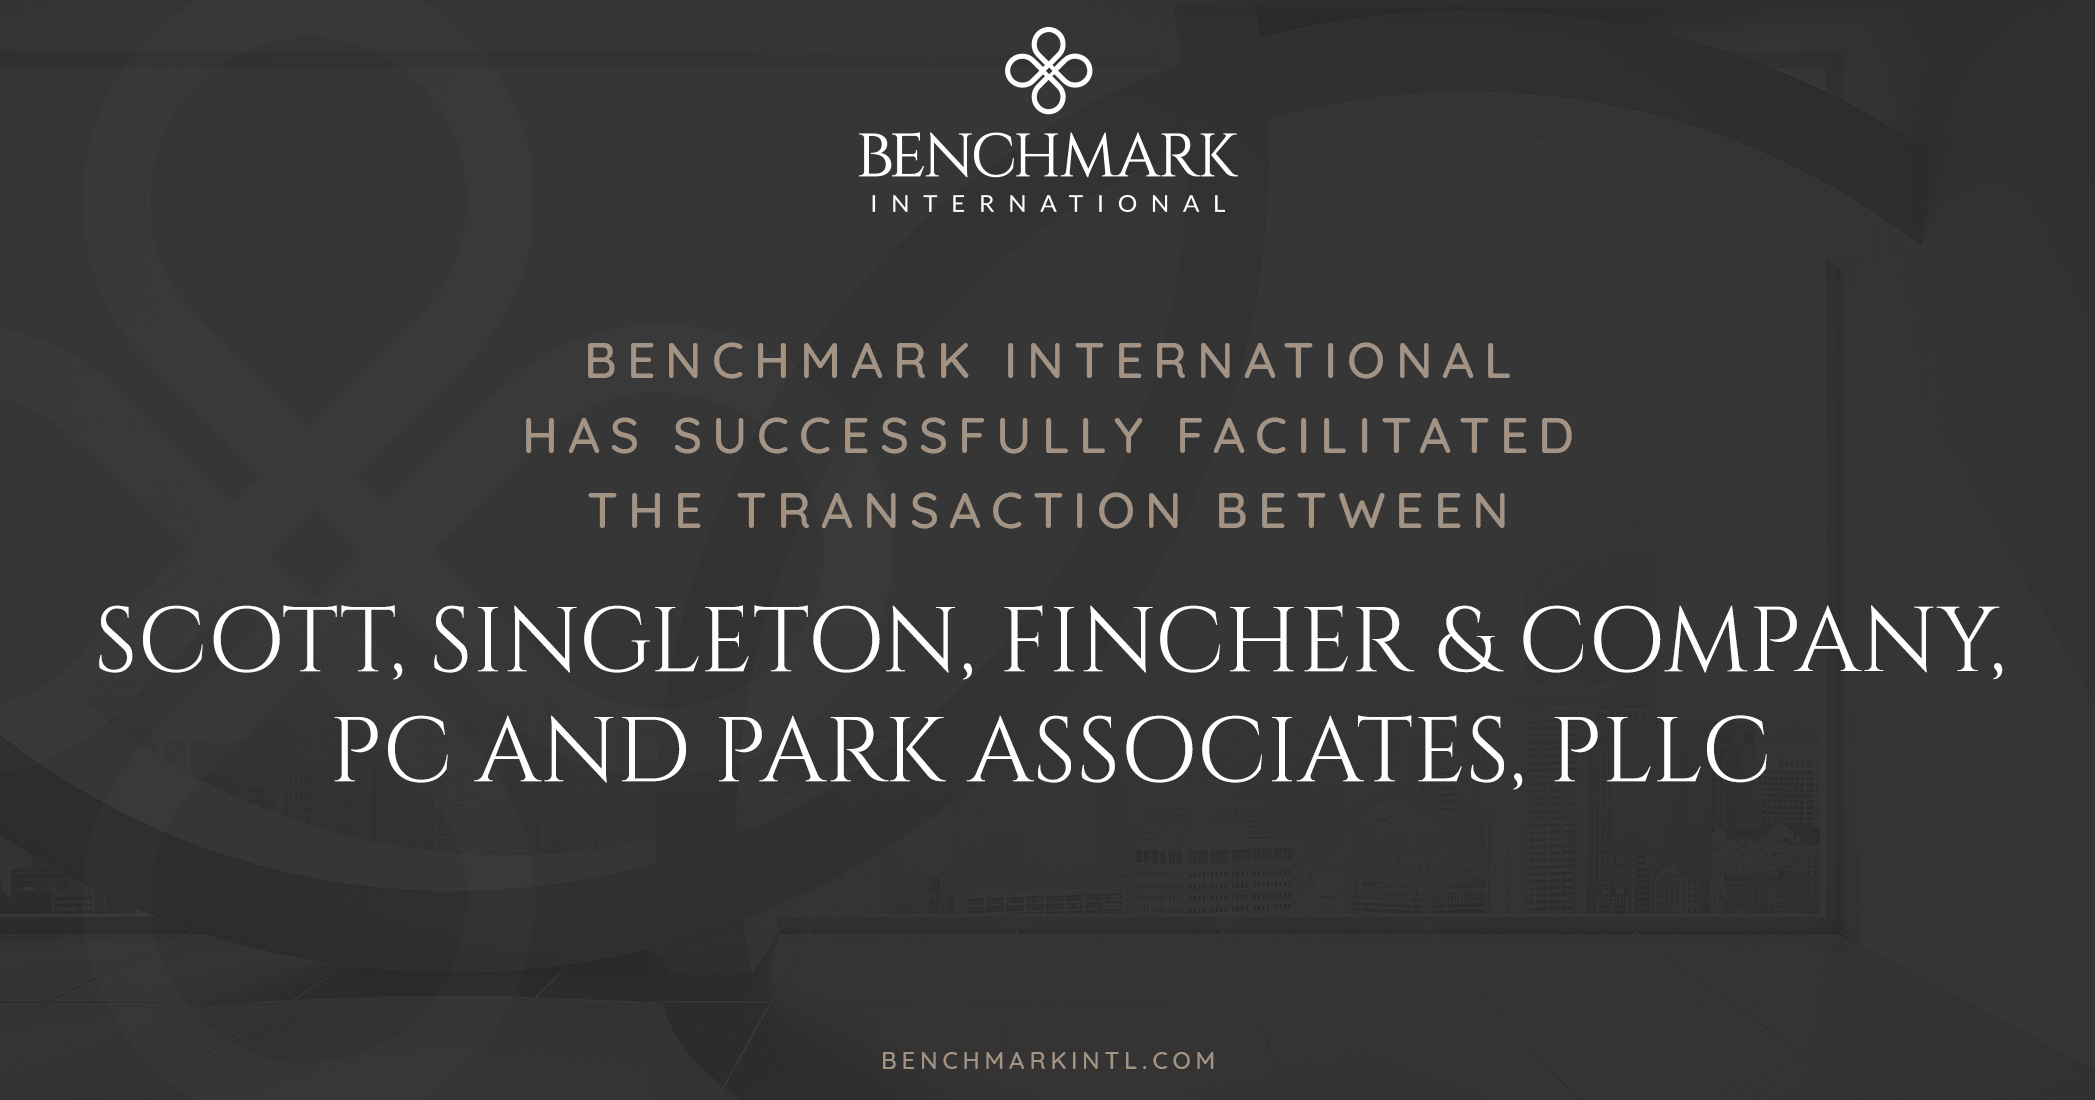 Benchmark International Successfully Facilitated the Transaction Between Scott, Singleton, Fincher & Company, PC and Park Associates, PLLC